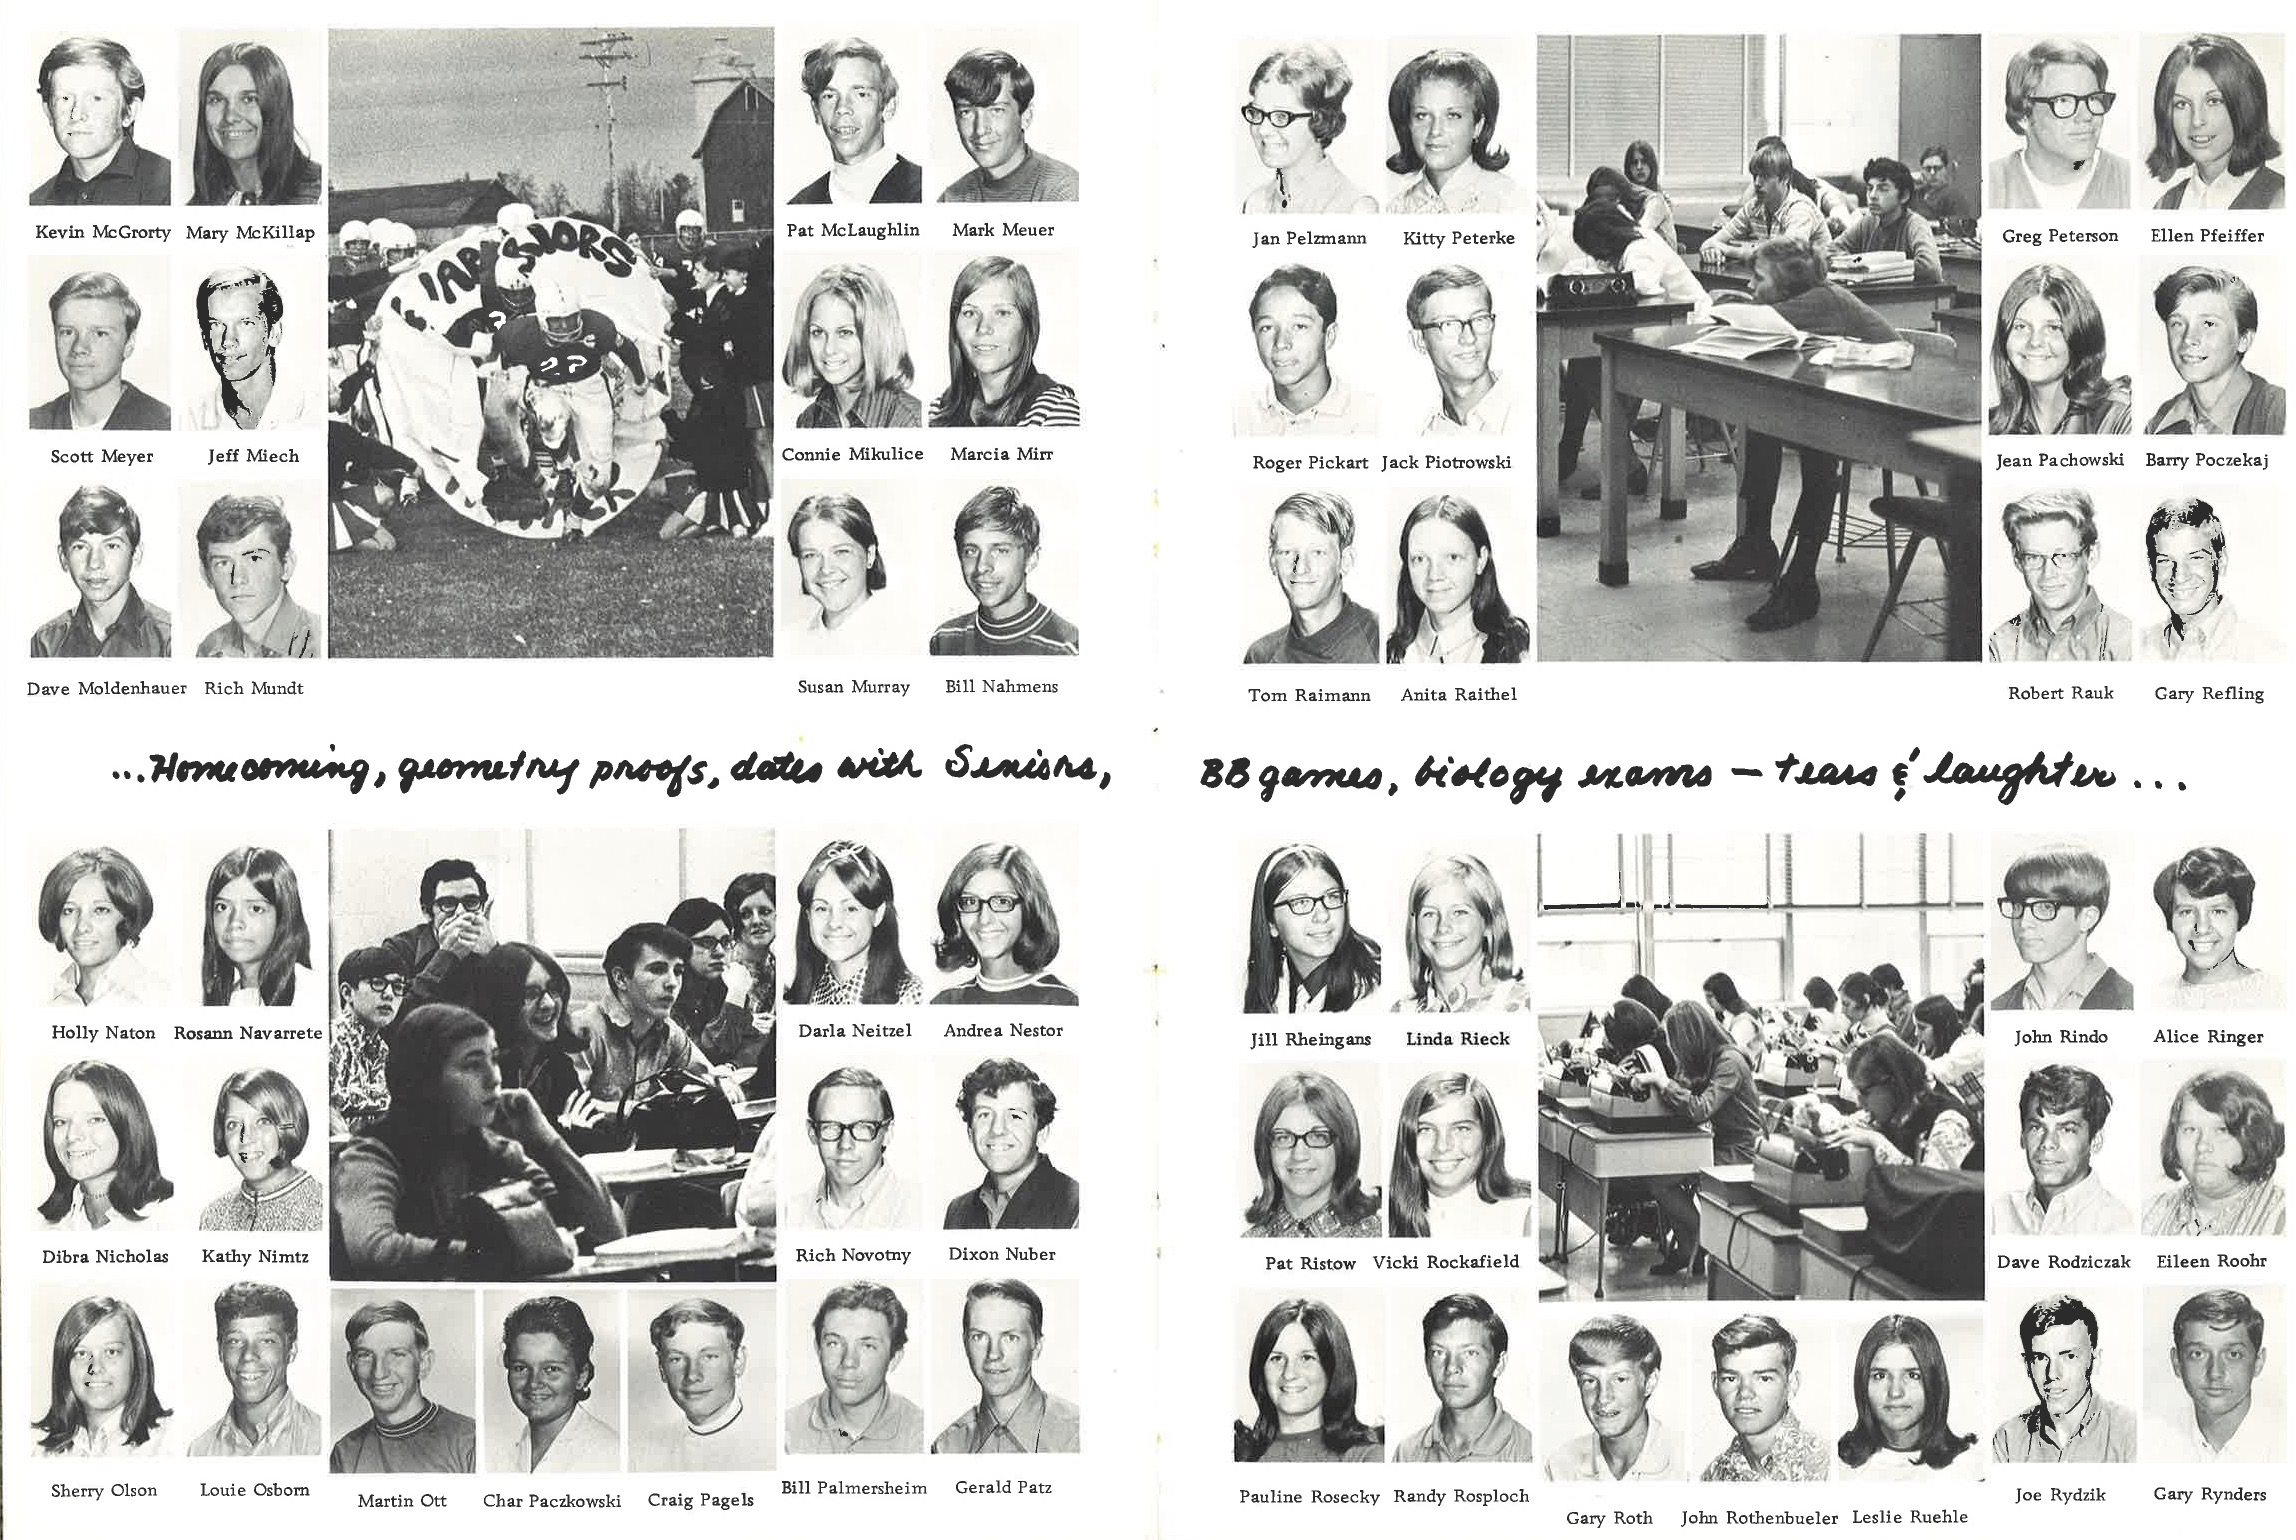 1971_Yearbook_44-45.jpg